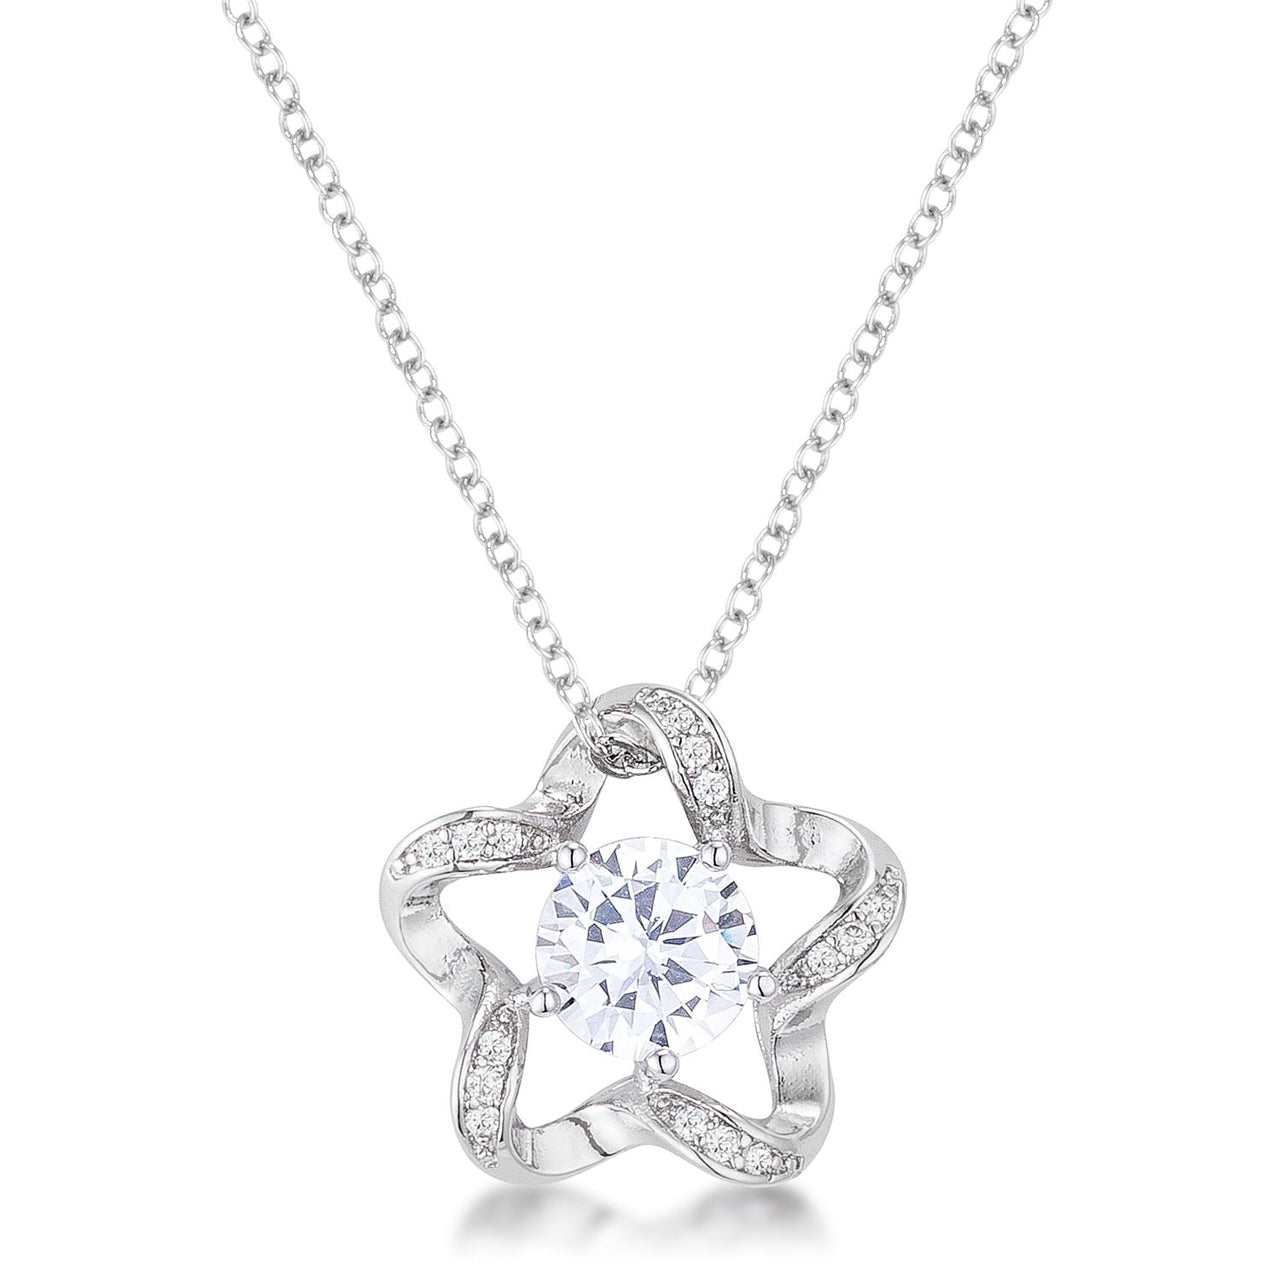 7mm Cubic Zirconia Star Fashion Pendant - Pendants - KA Designs Online